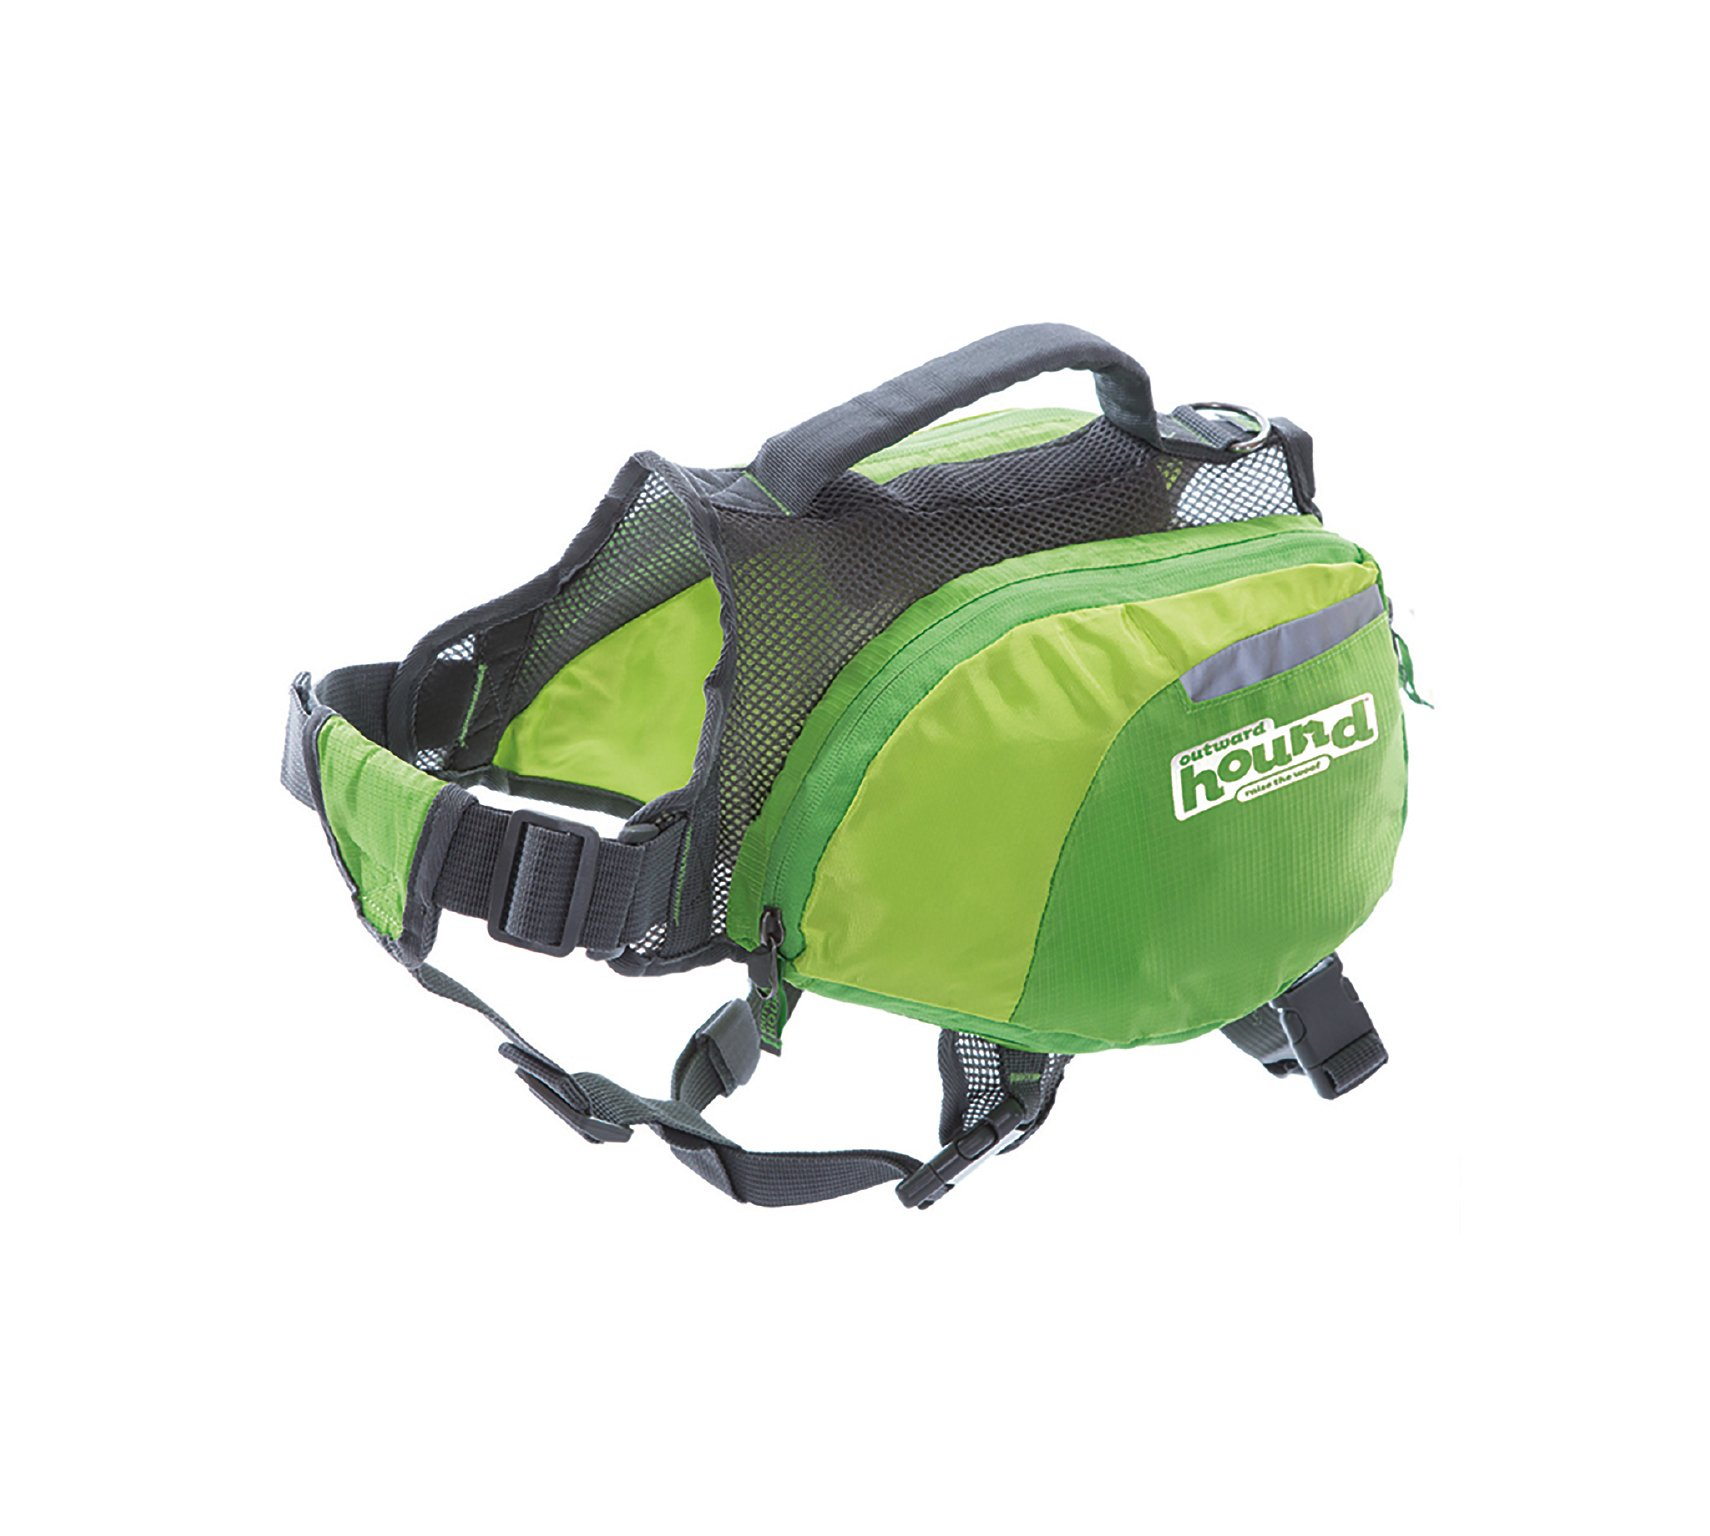 Daypak Dog Backpack Hiking Gear For Dogs by Outward Hound, Large, Green by Outward Hound